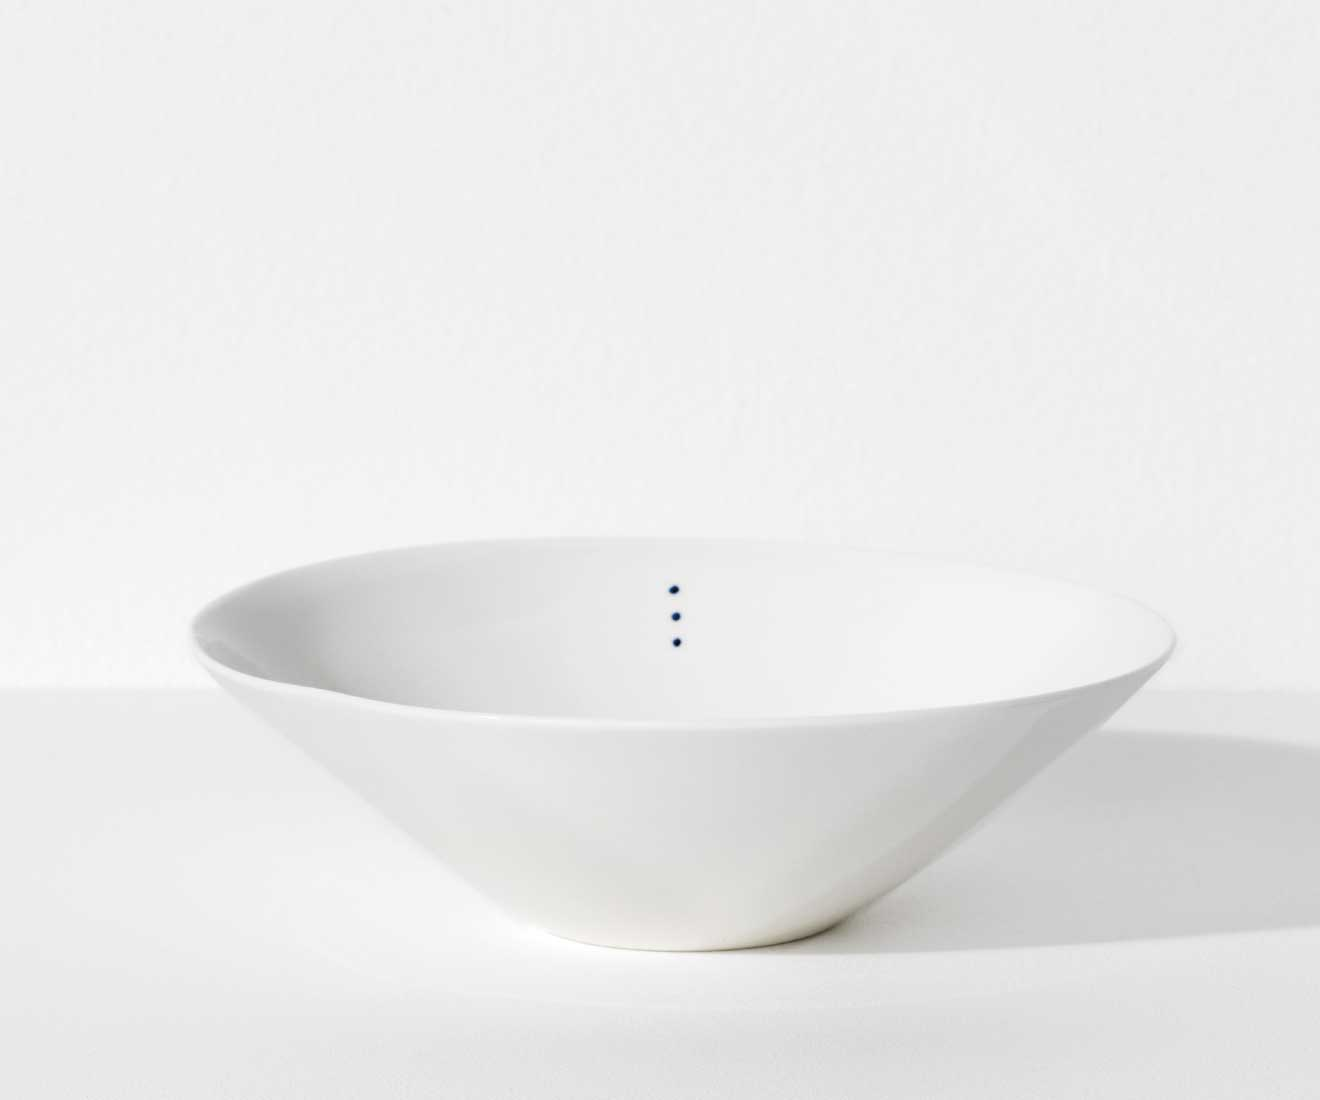 Motarasu Products - Shiro bowl Small with 3 dots by Stilleben